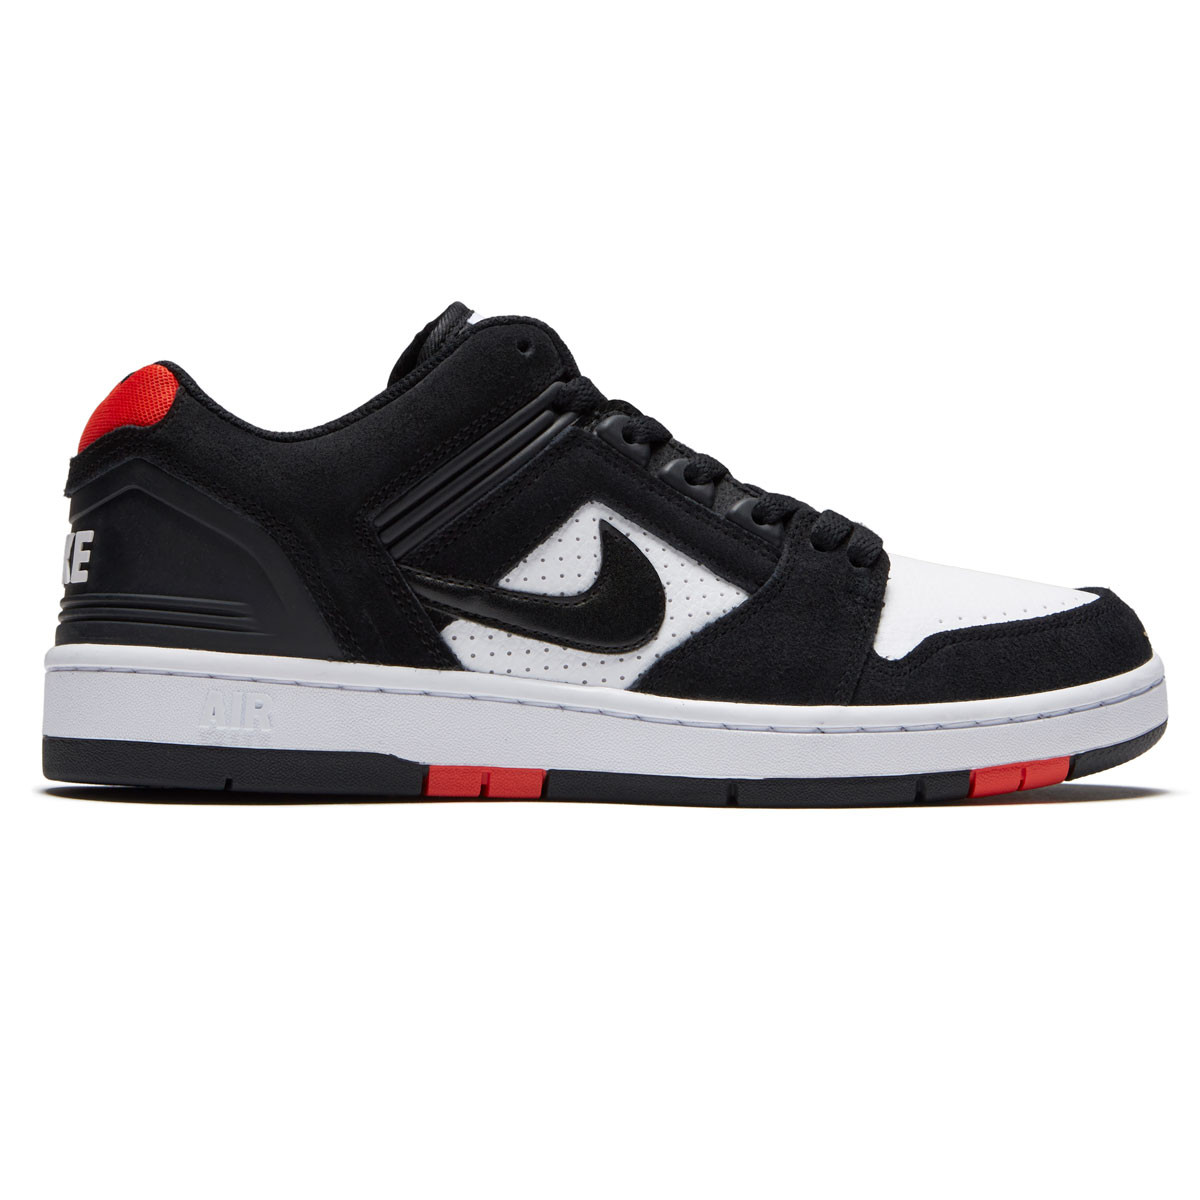 93f0edd969db6 Nike SB Air Force II Low Shoes